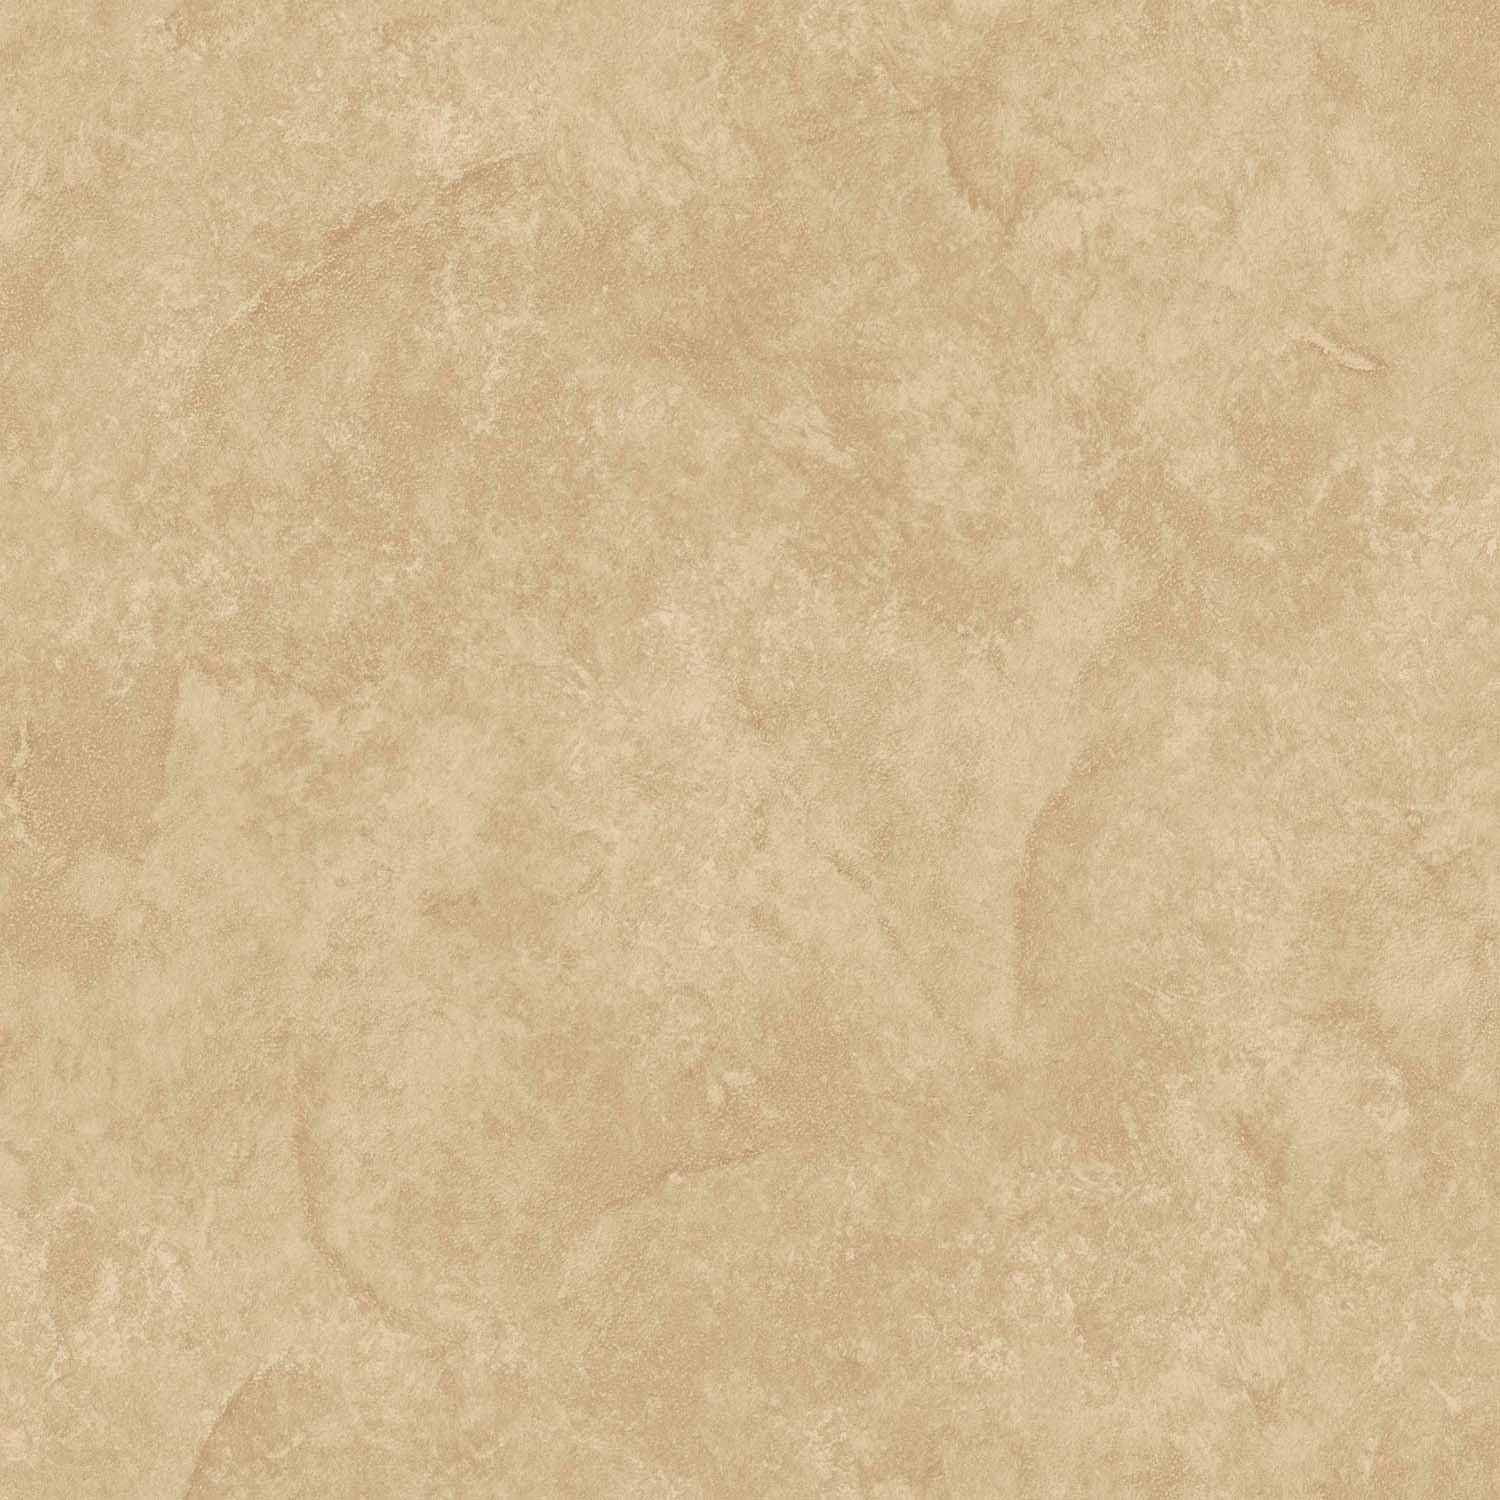 Top Wallpaper Marble Cream - 445fd6d792451d0ac7830230bf01976f  Best Photo Reference_889743.jpg